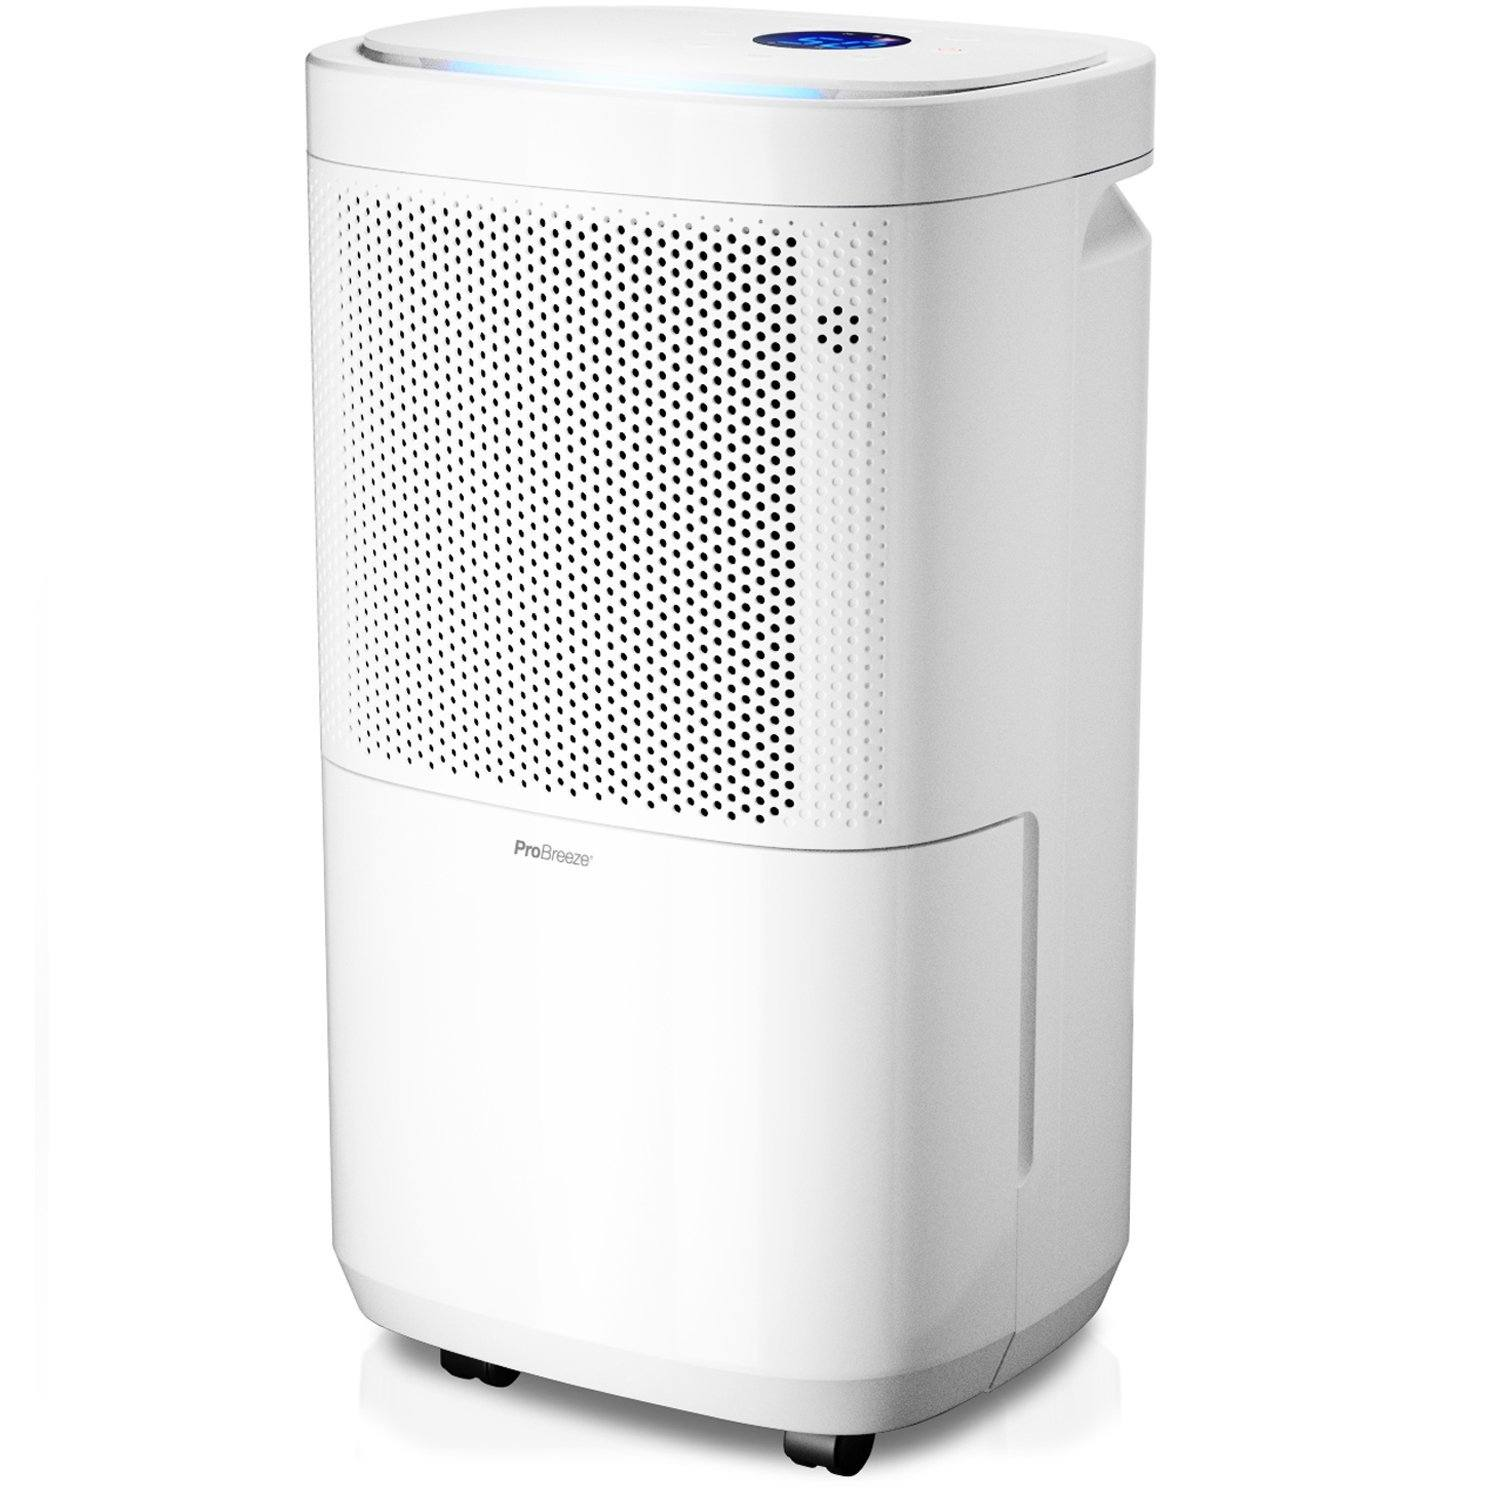 déshumidificateur maison Pro Breeze 12 L